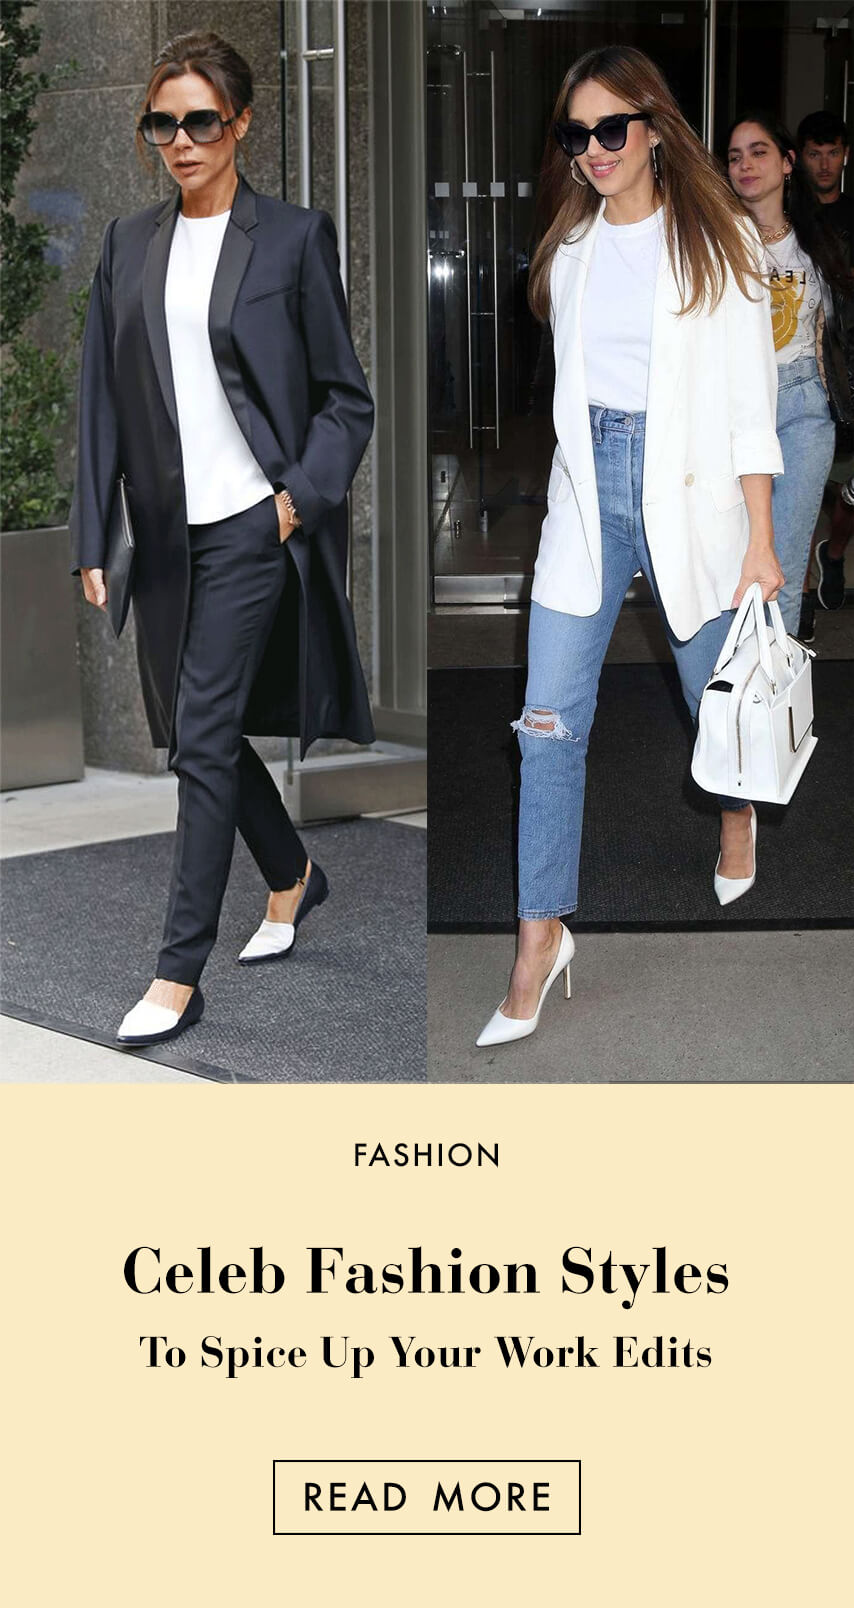 PAZZION EDIT - CELEB FASHION STYLES TO SPICE UP YOUR WORK EDITS